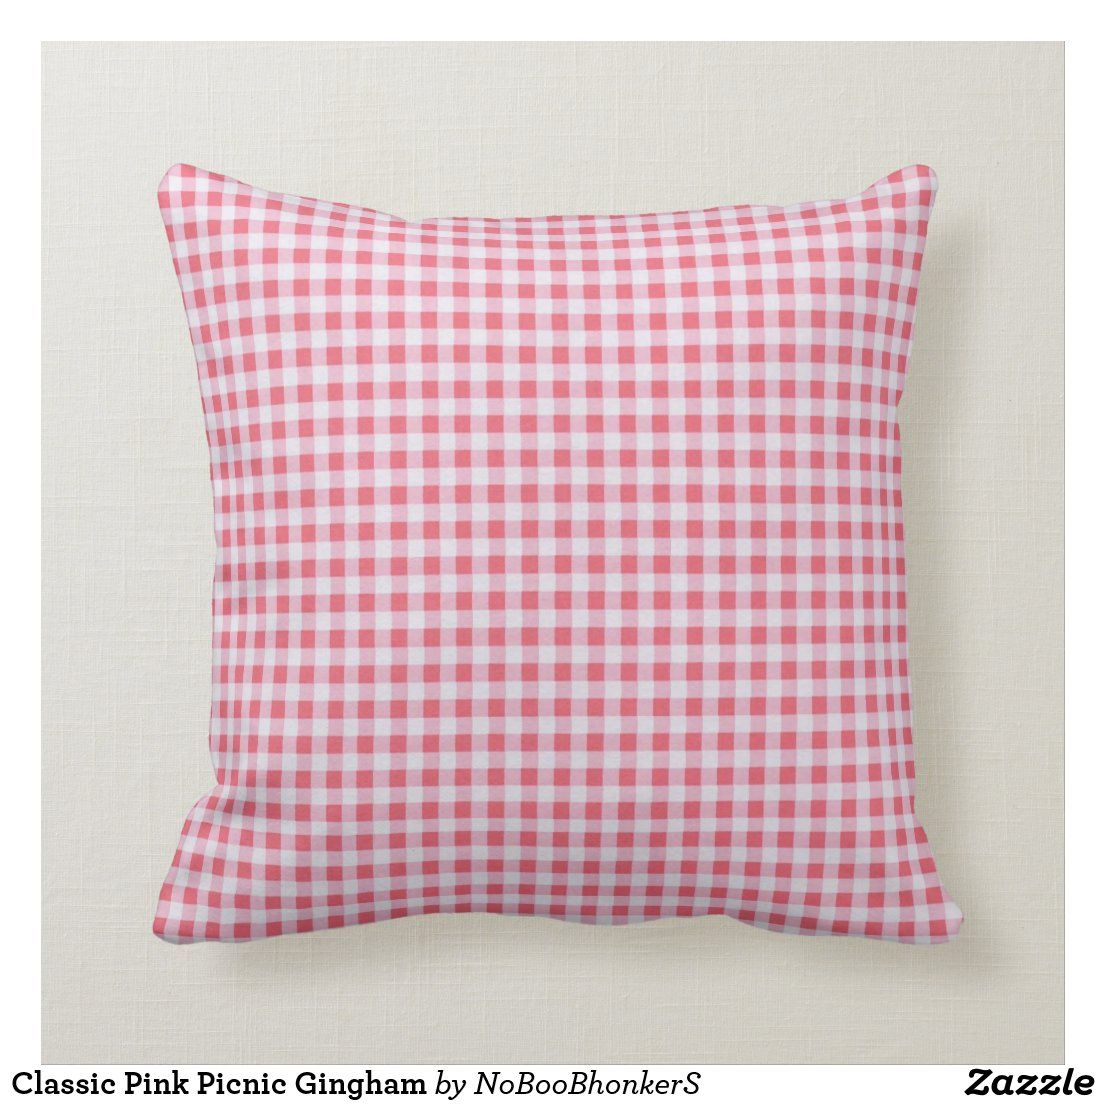 Classic Pink Picnic Gingham Throw Pillow Zazzle Com In 2021 Throw Pillows Pillows Pink Pillows Decorative